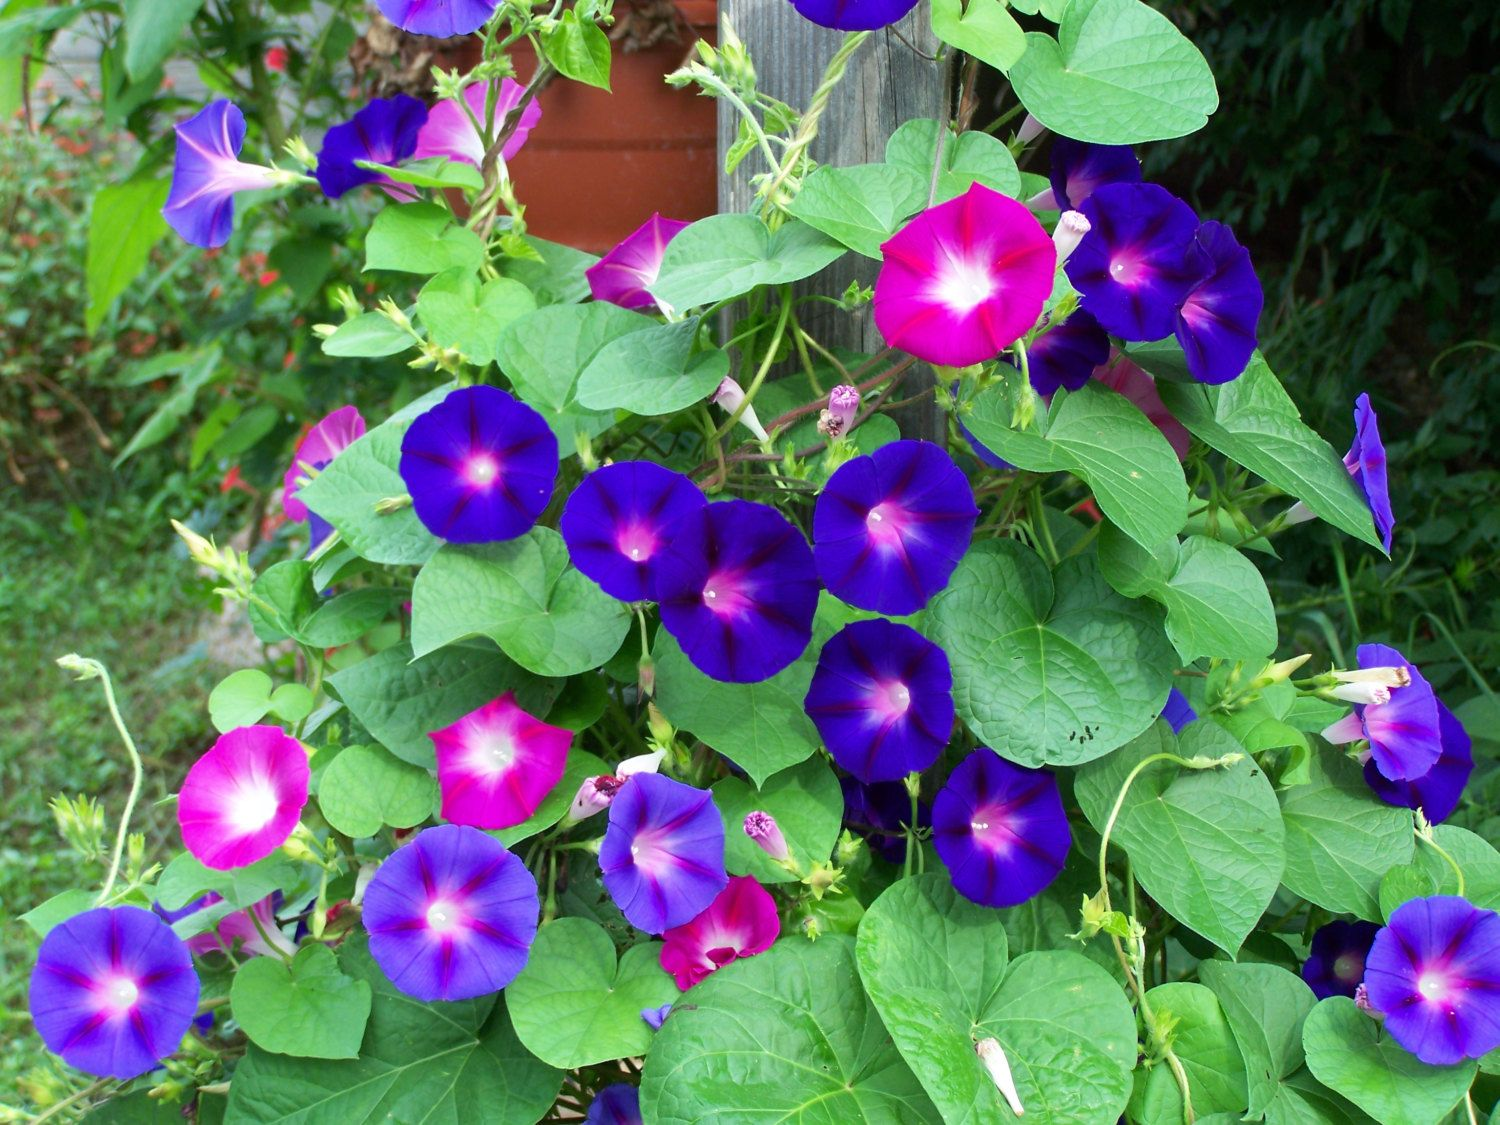 Morning glories are